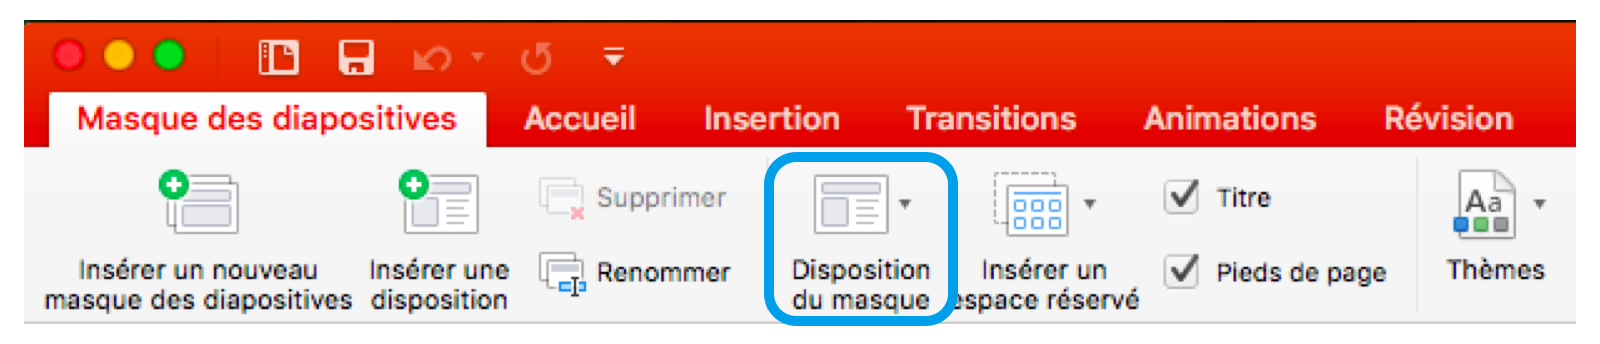 Disposition Masques diapositives